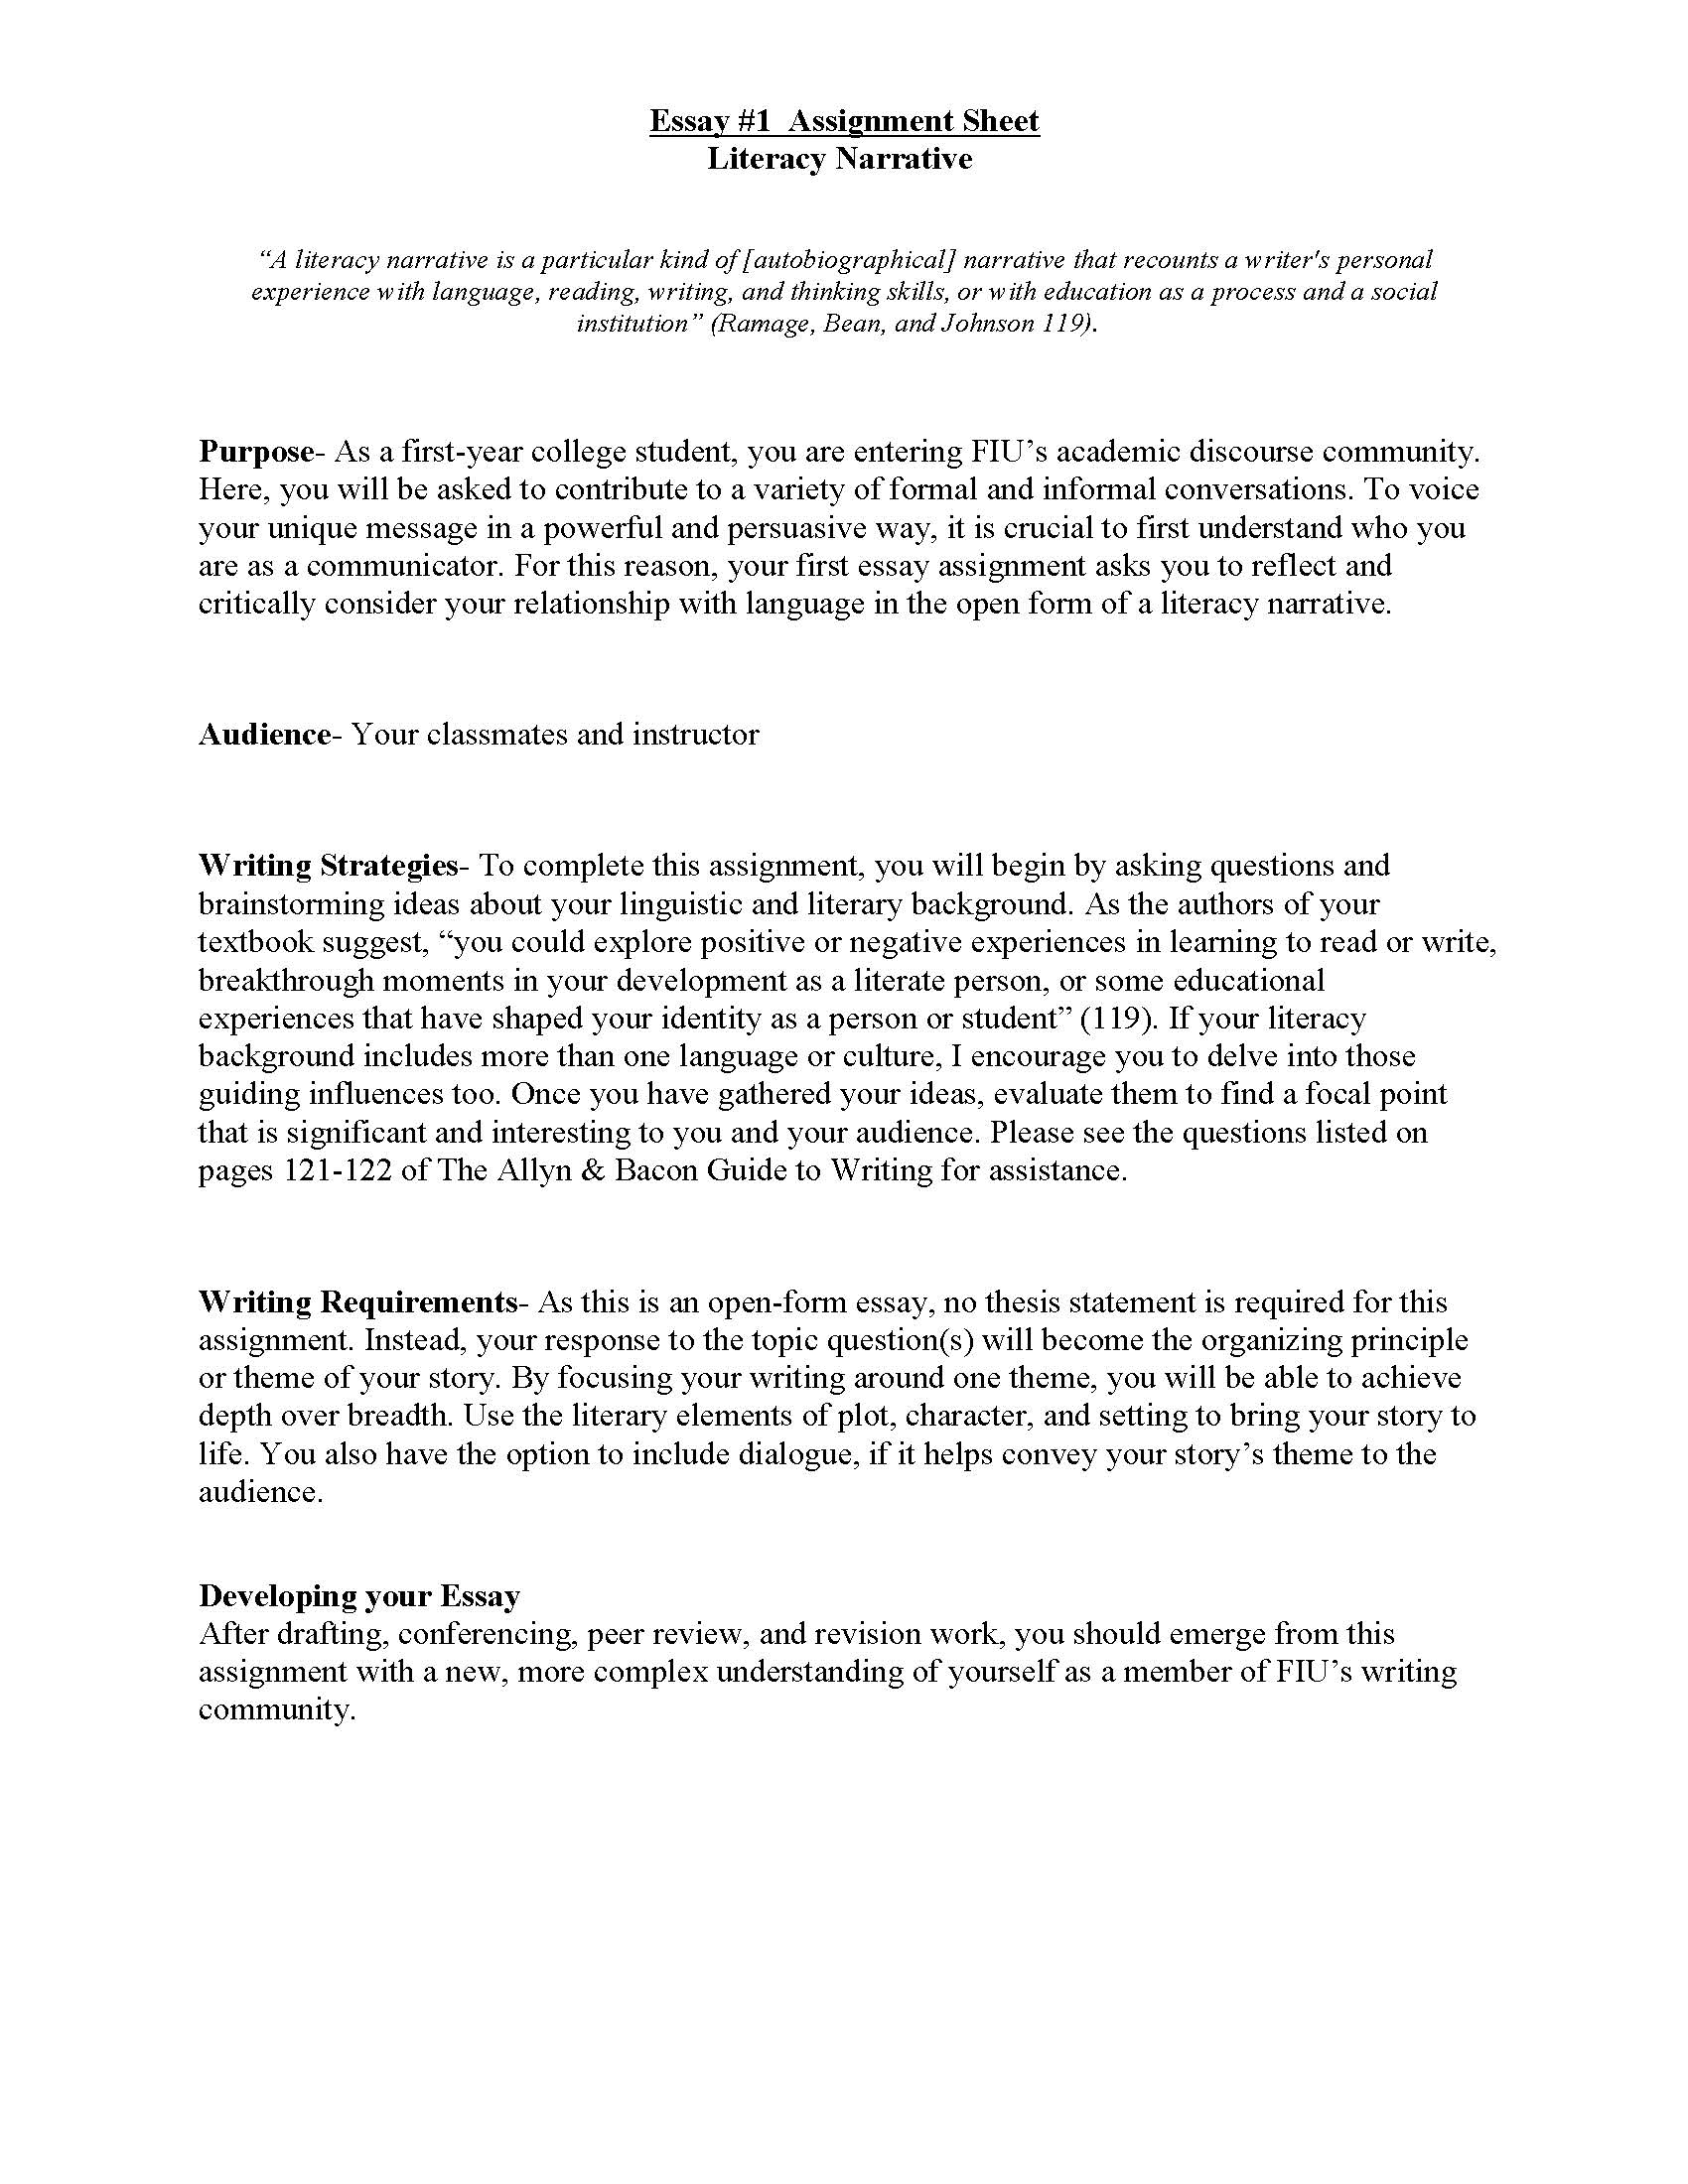 007 Conclusion For Macbeth Essay Ambition Example Literacy Narrative Unit Assignment Spring 2012 Page 1 Best Full